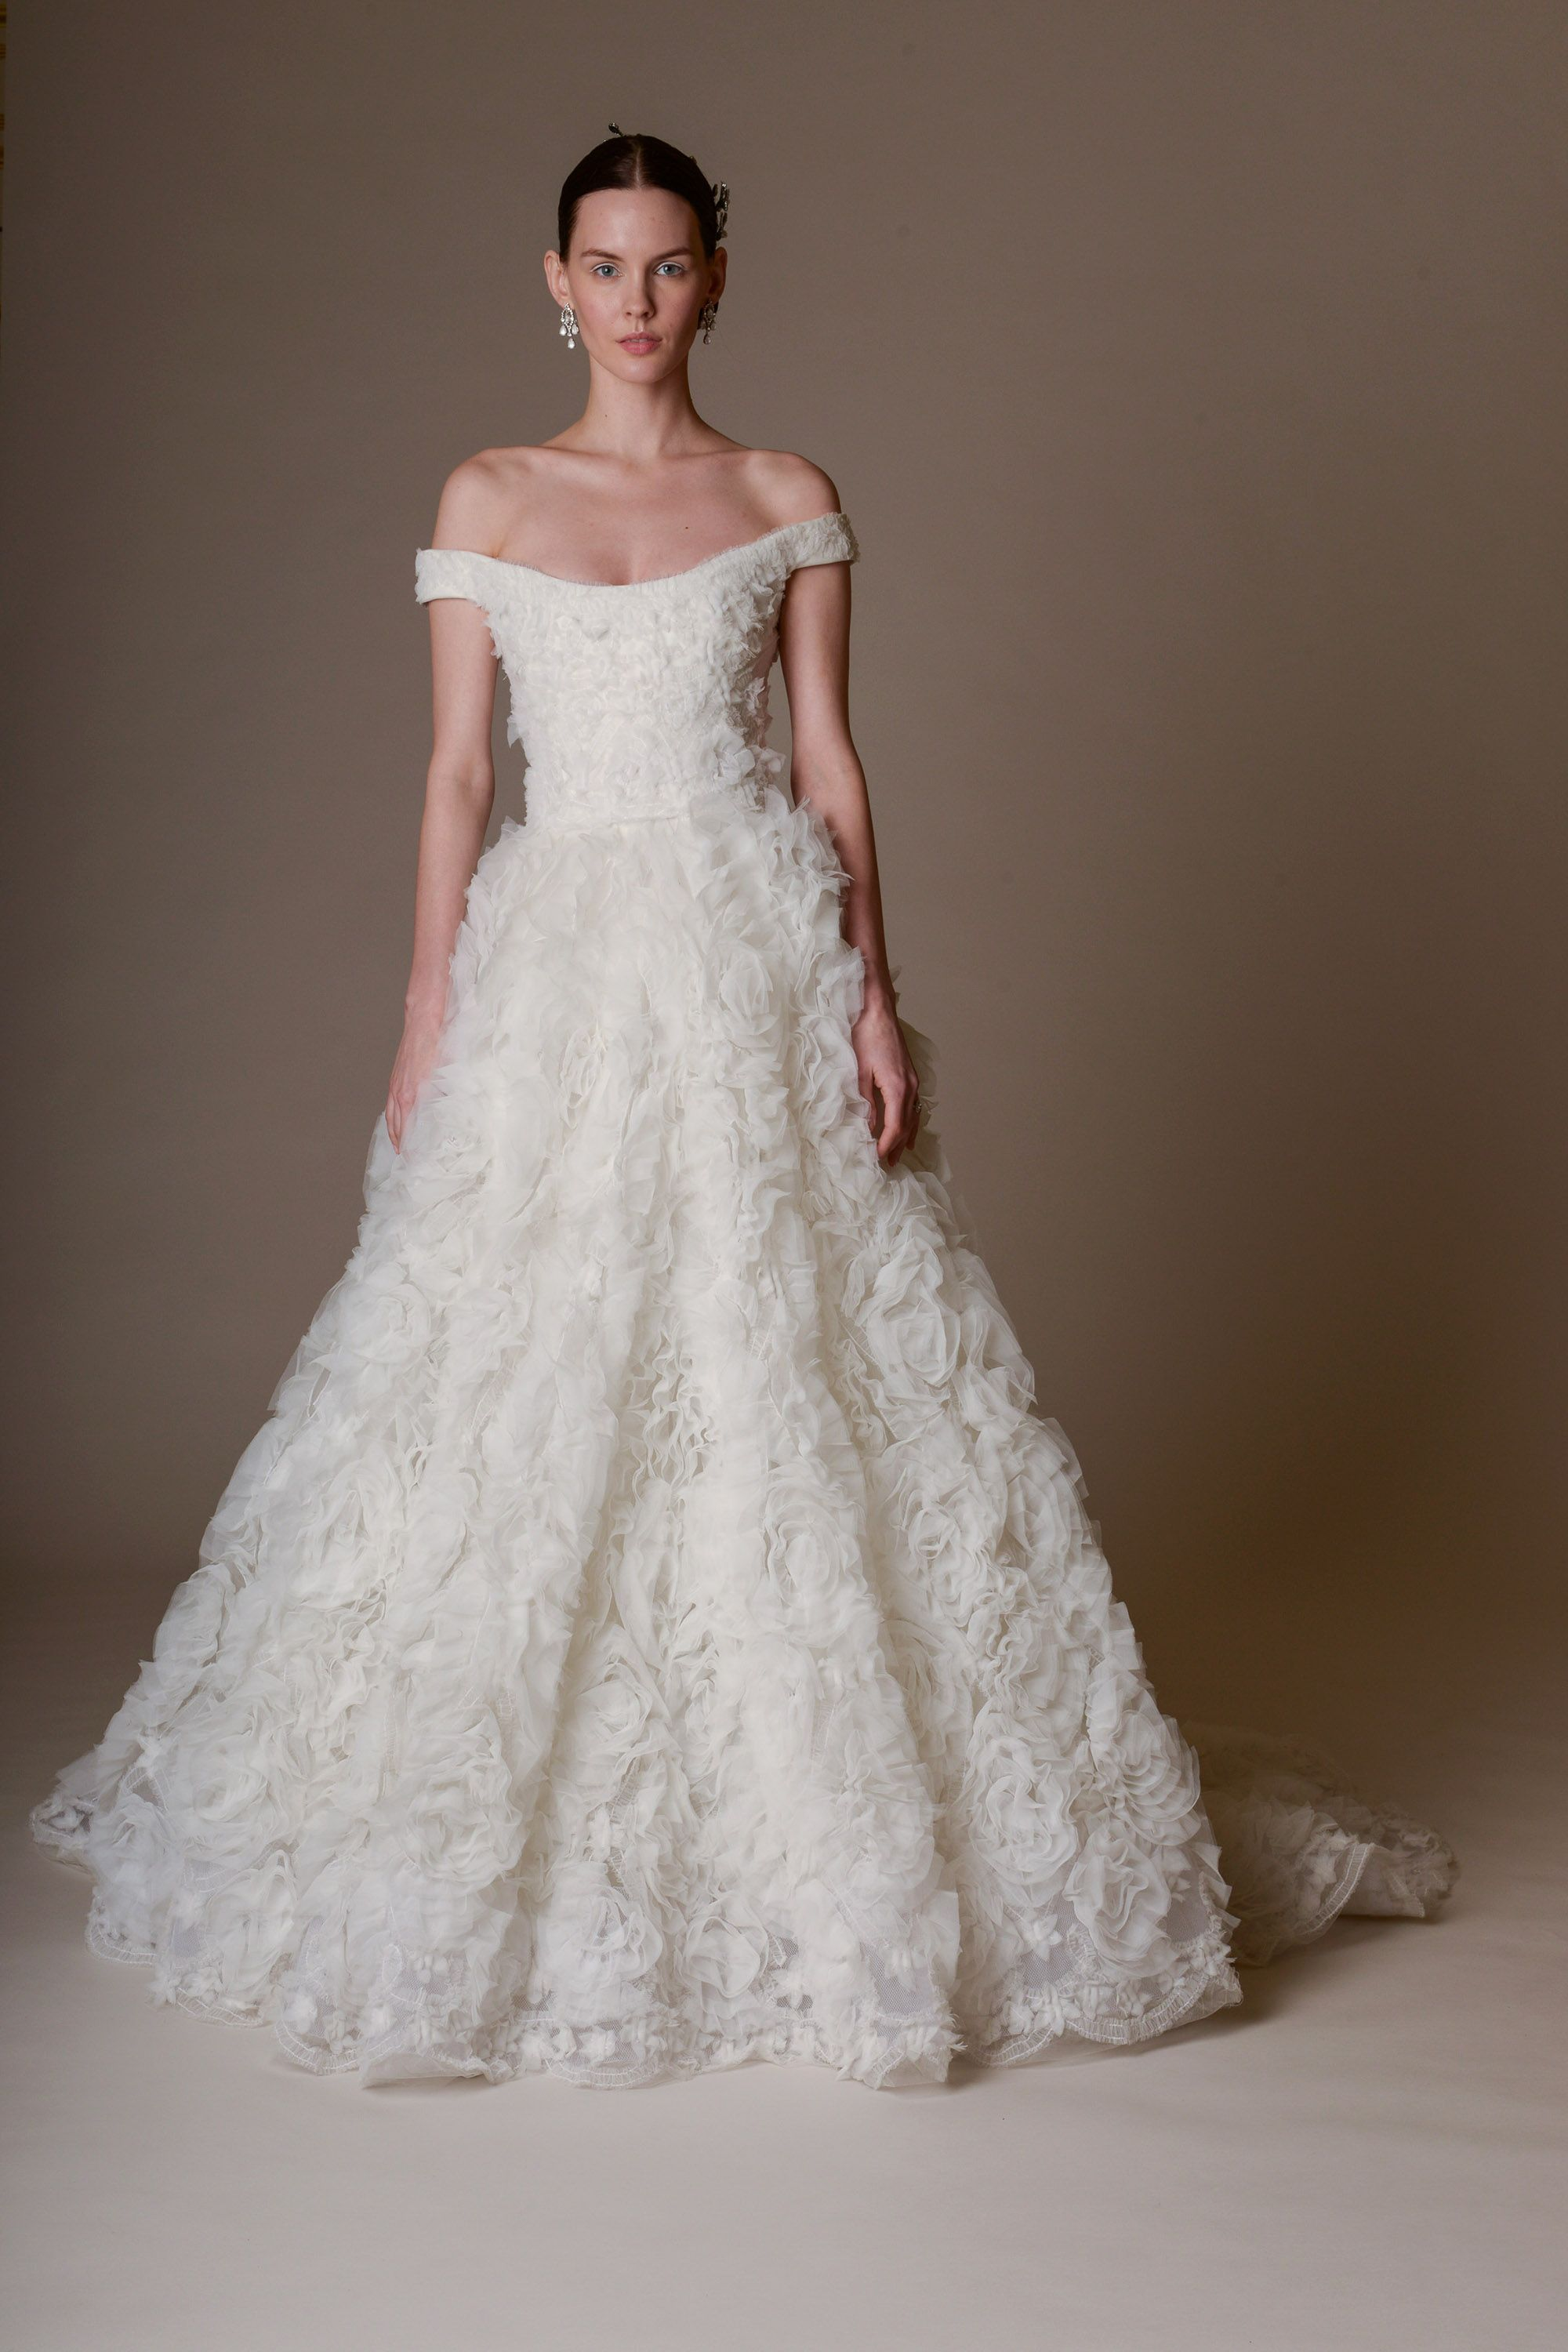 luxury wedding dress hire london designer wedding dress rental Spring Designer